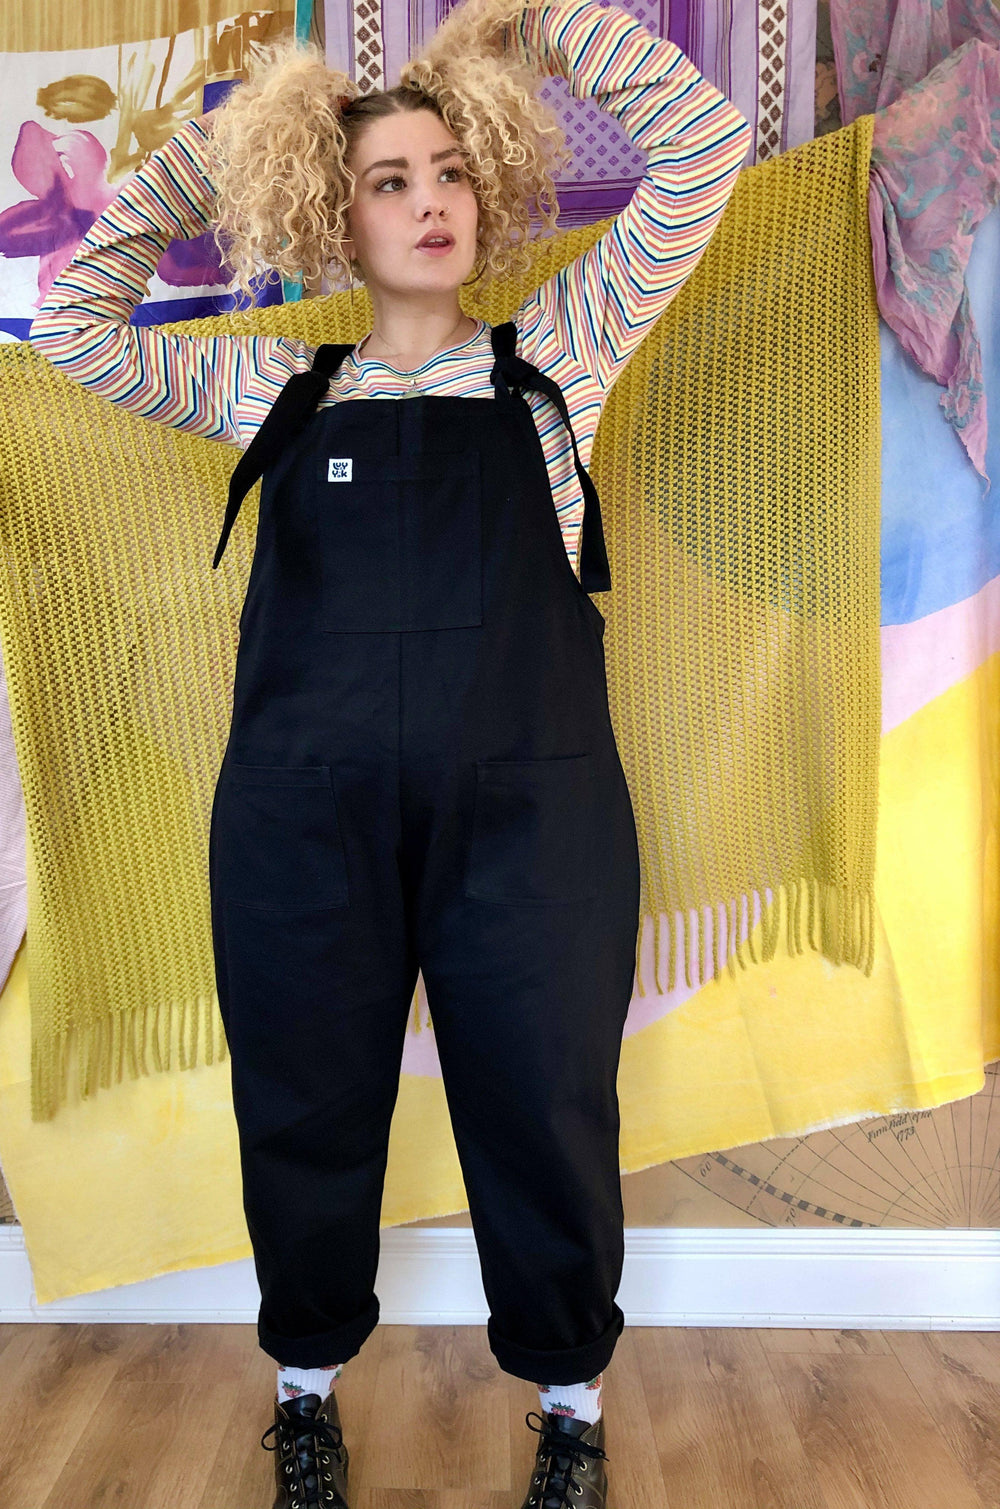 Lucy & Yak Dungarees Erro Heavy Twill Original Dungarees In Black